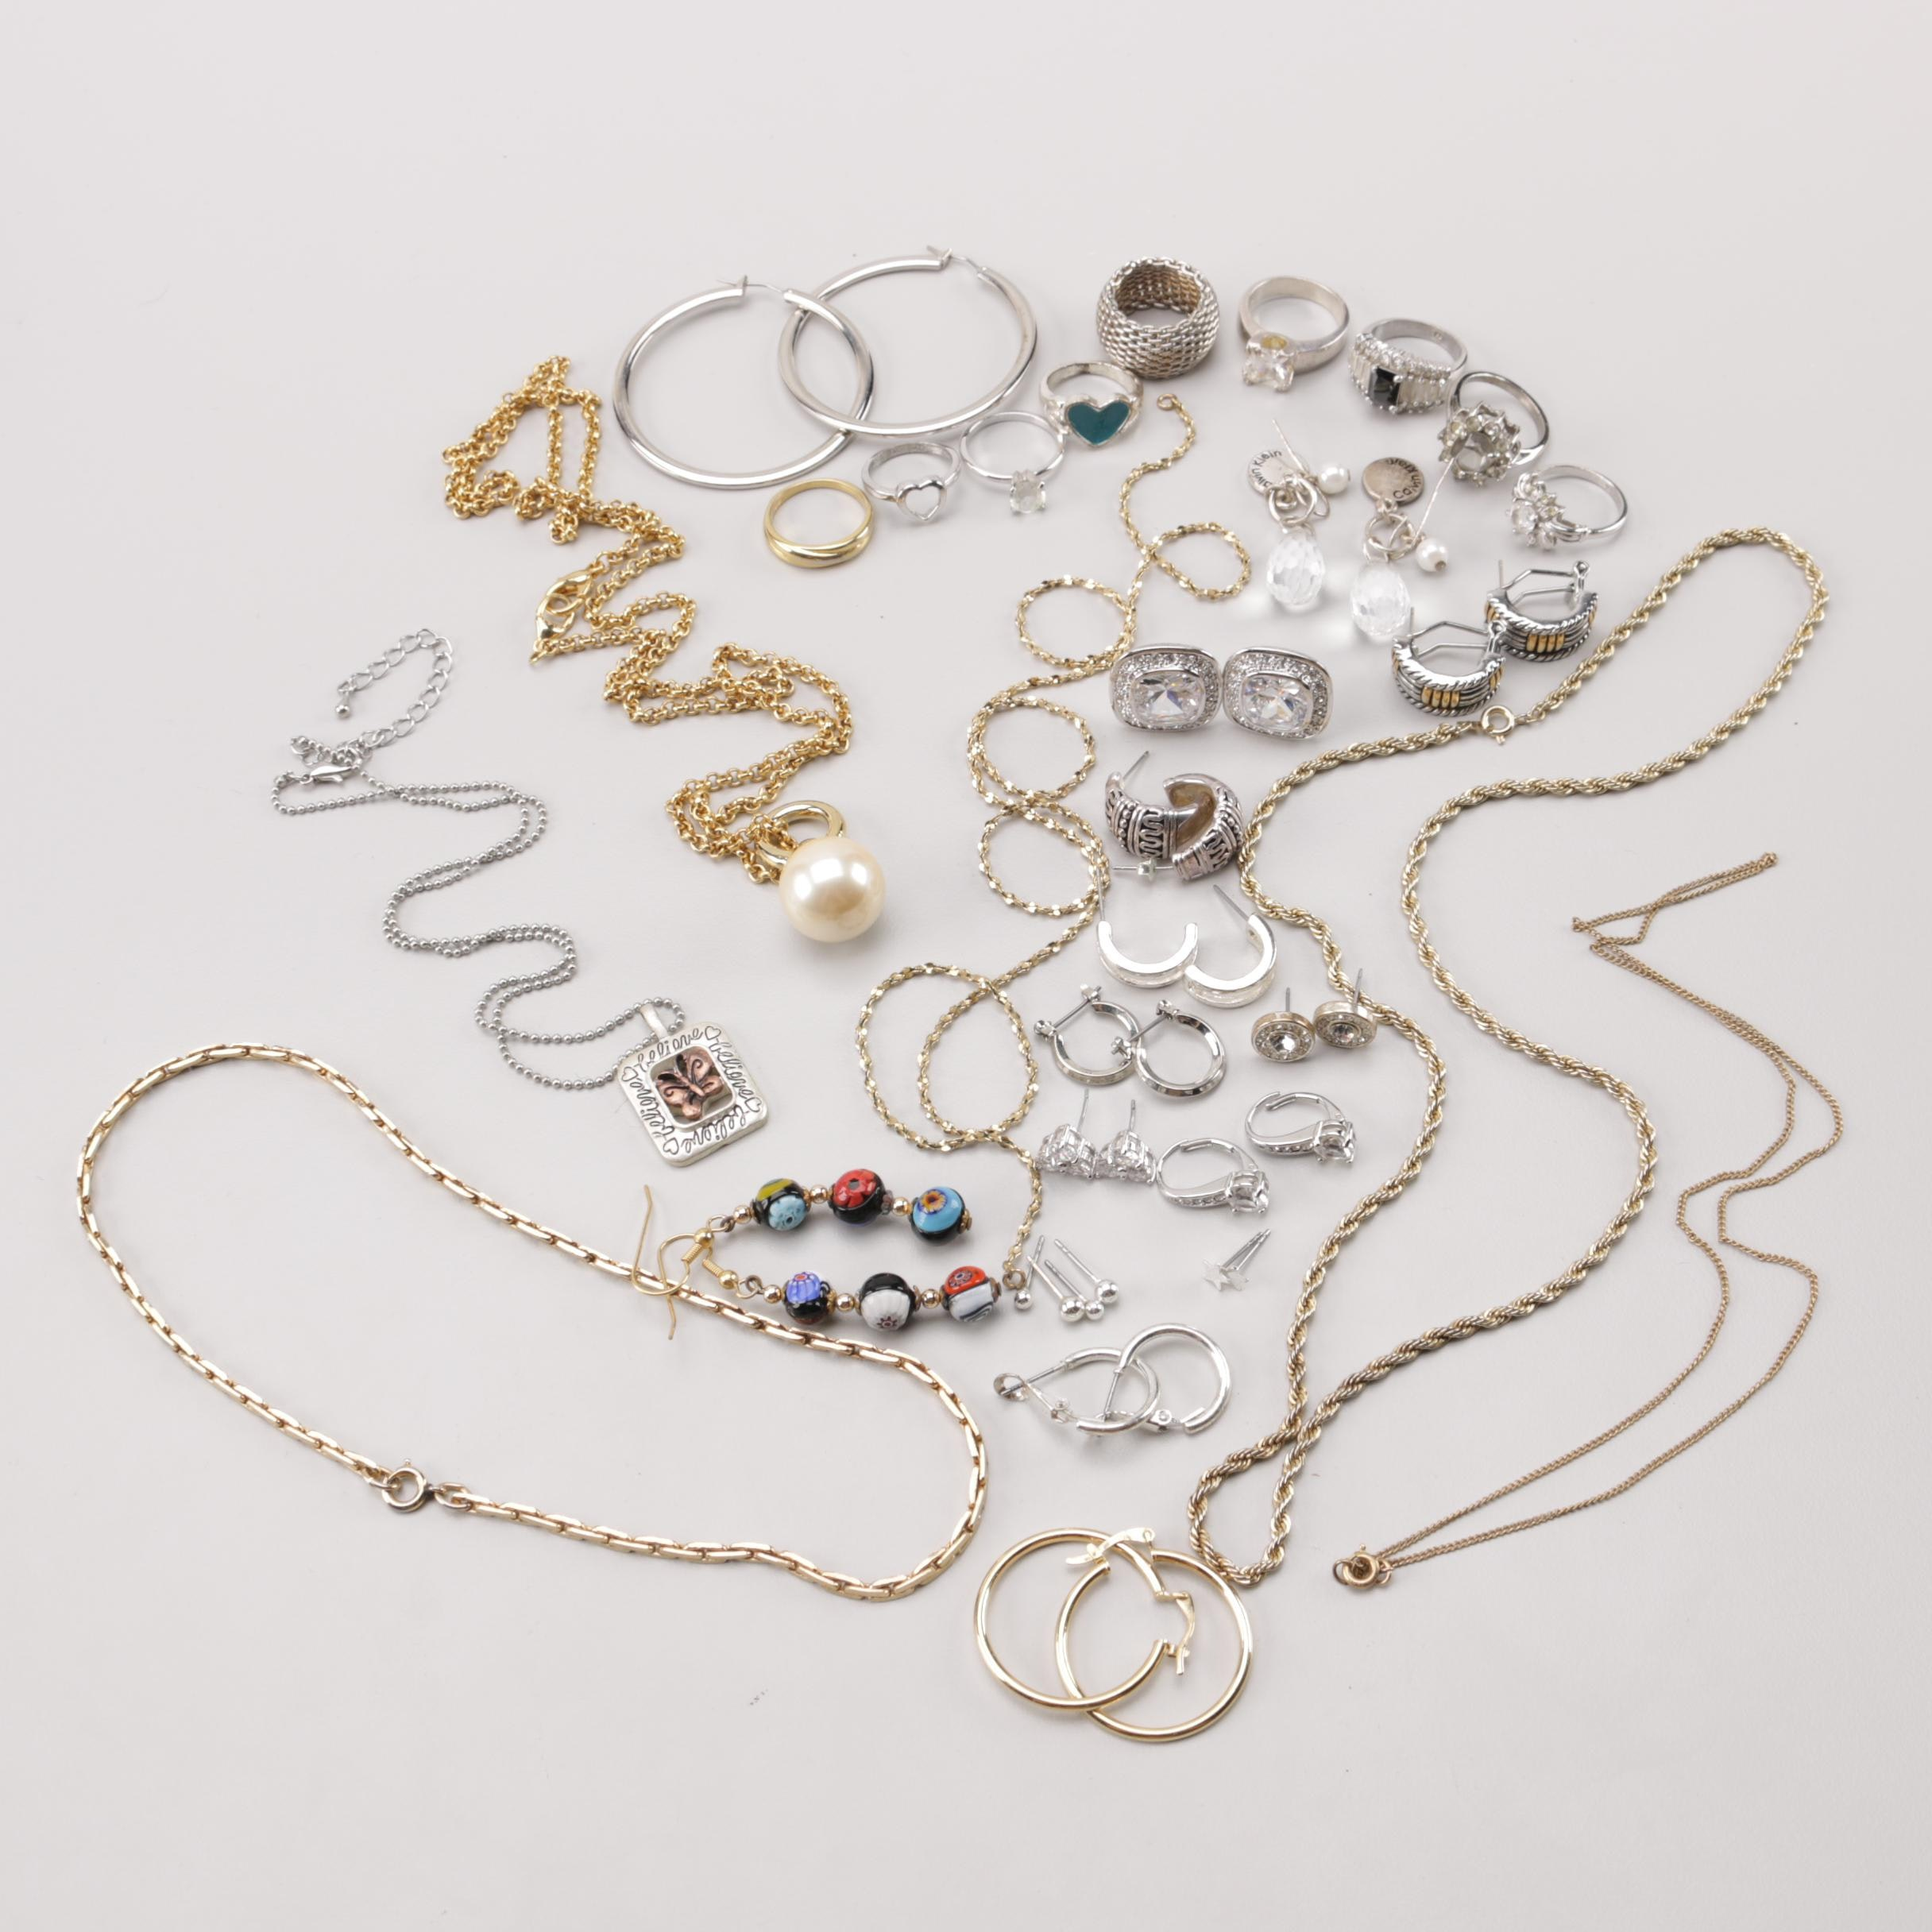 Assortment of Costume Cubic Zirconia and Other Gemstone Jewelry